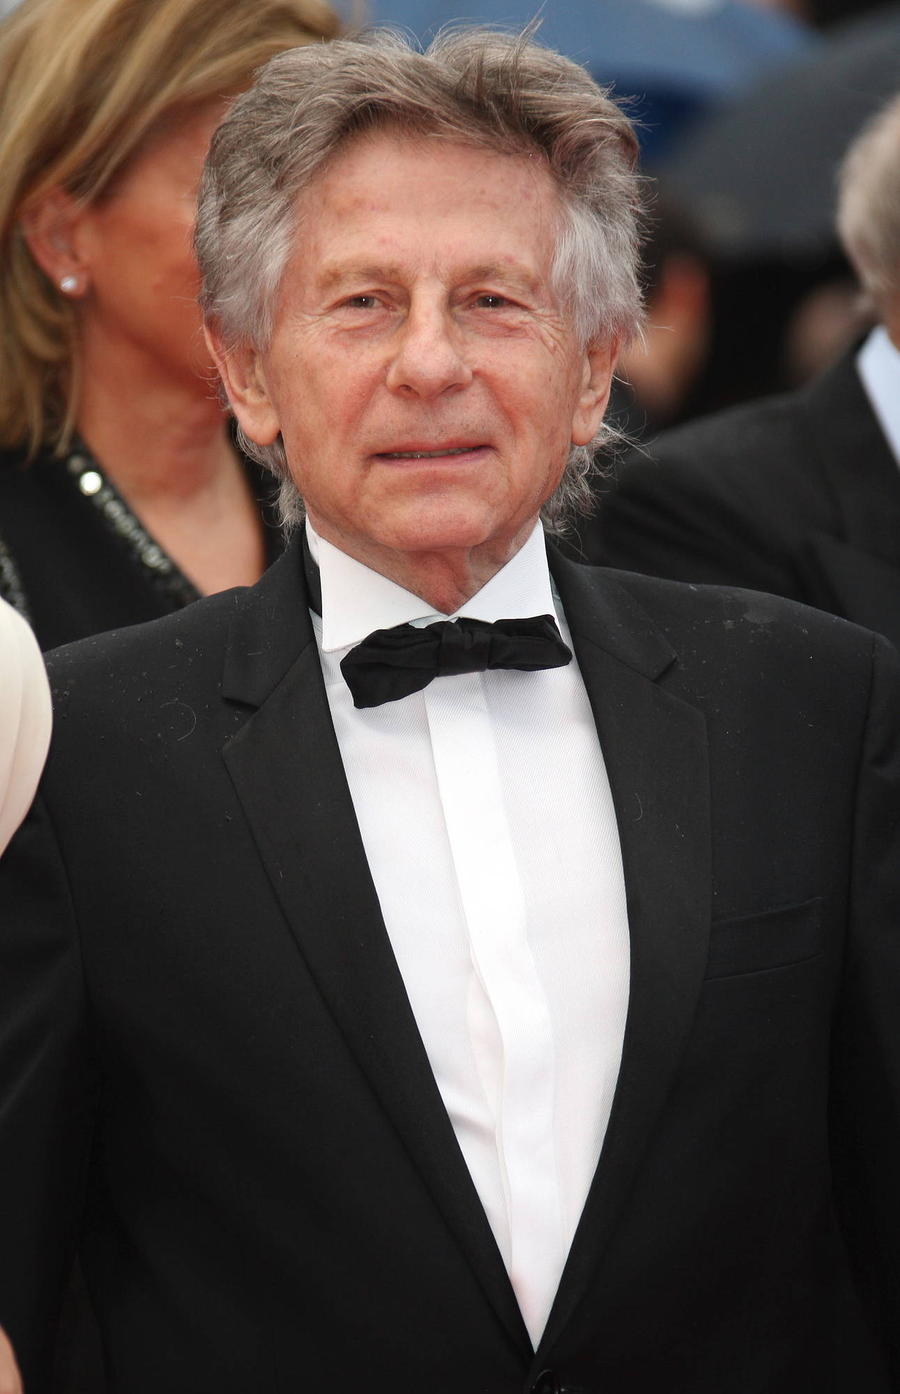 French Women's Rights Activists Upset About Roman Polanski's Cesars Jury Invite